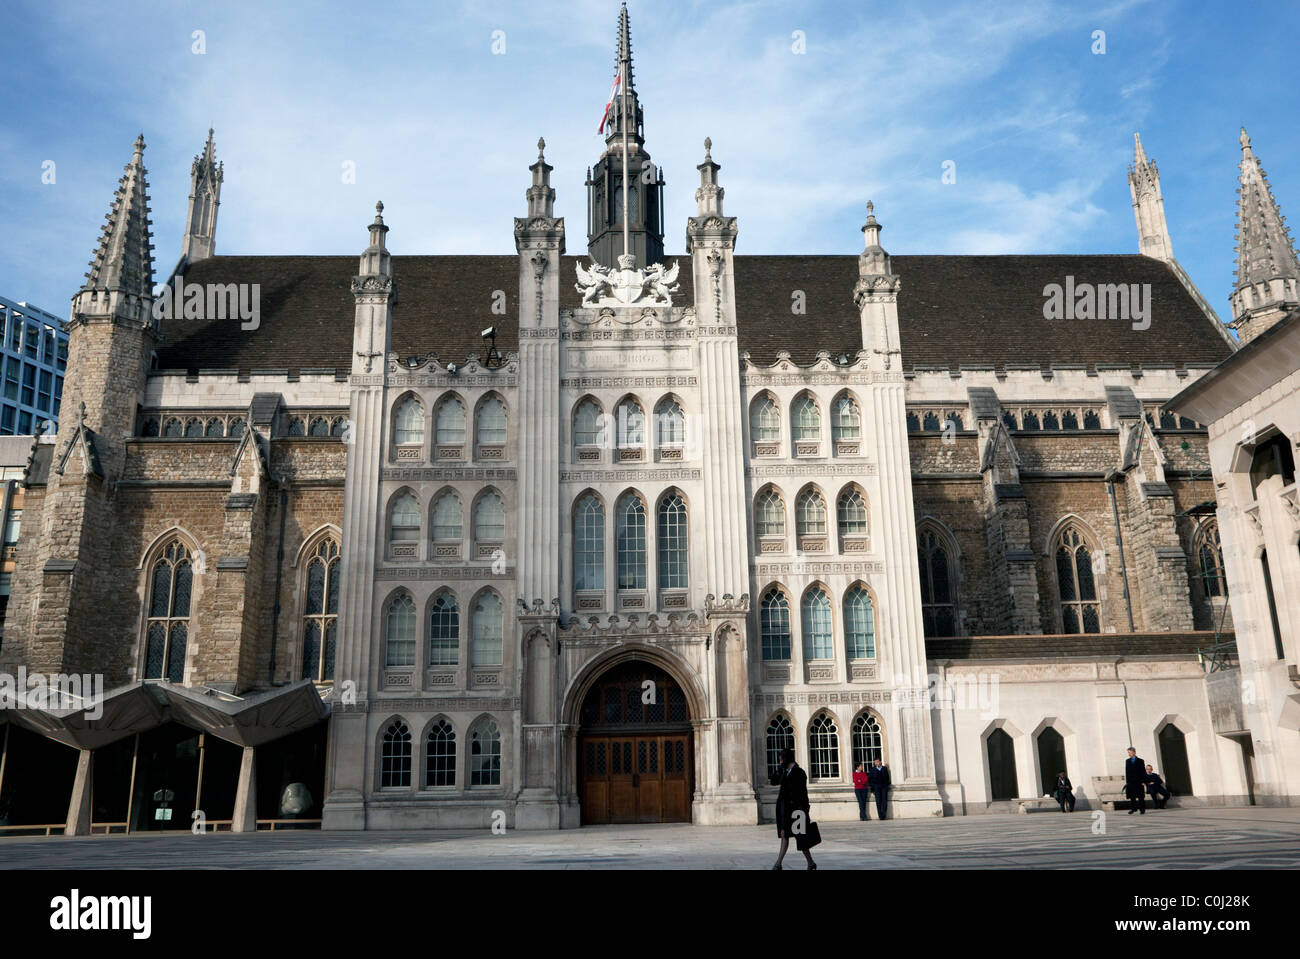 Guildhall in the City of London - Stock Image